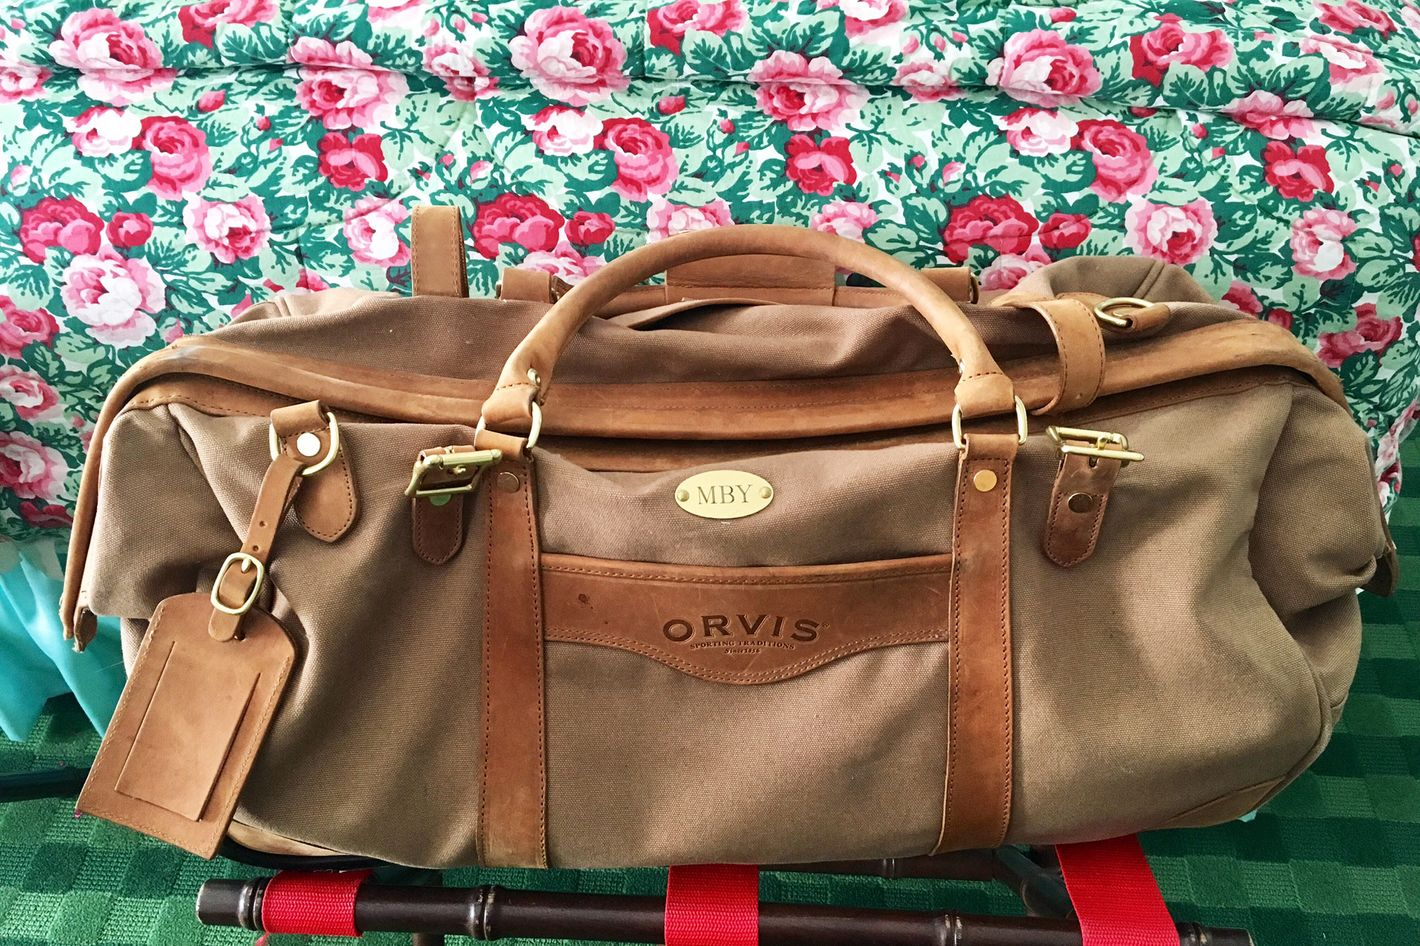 Orvis 1856 Medium Duffle